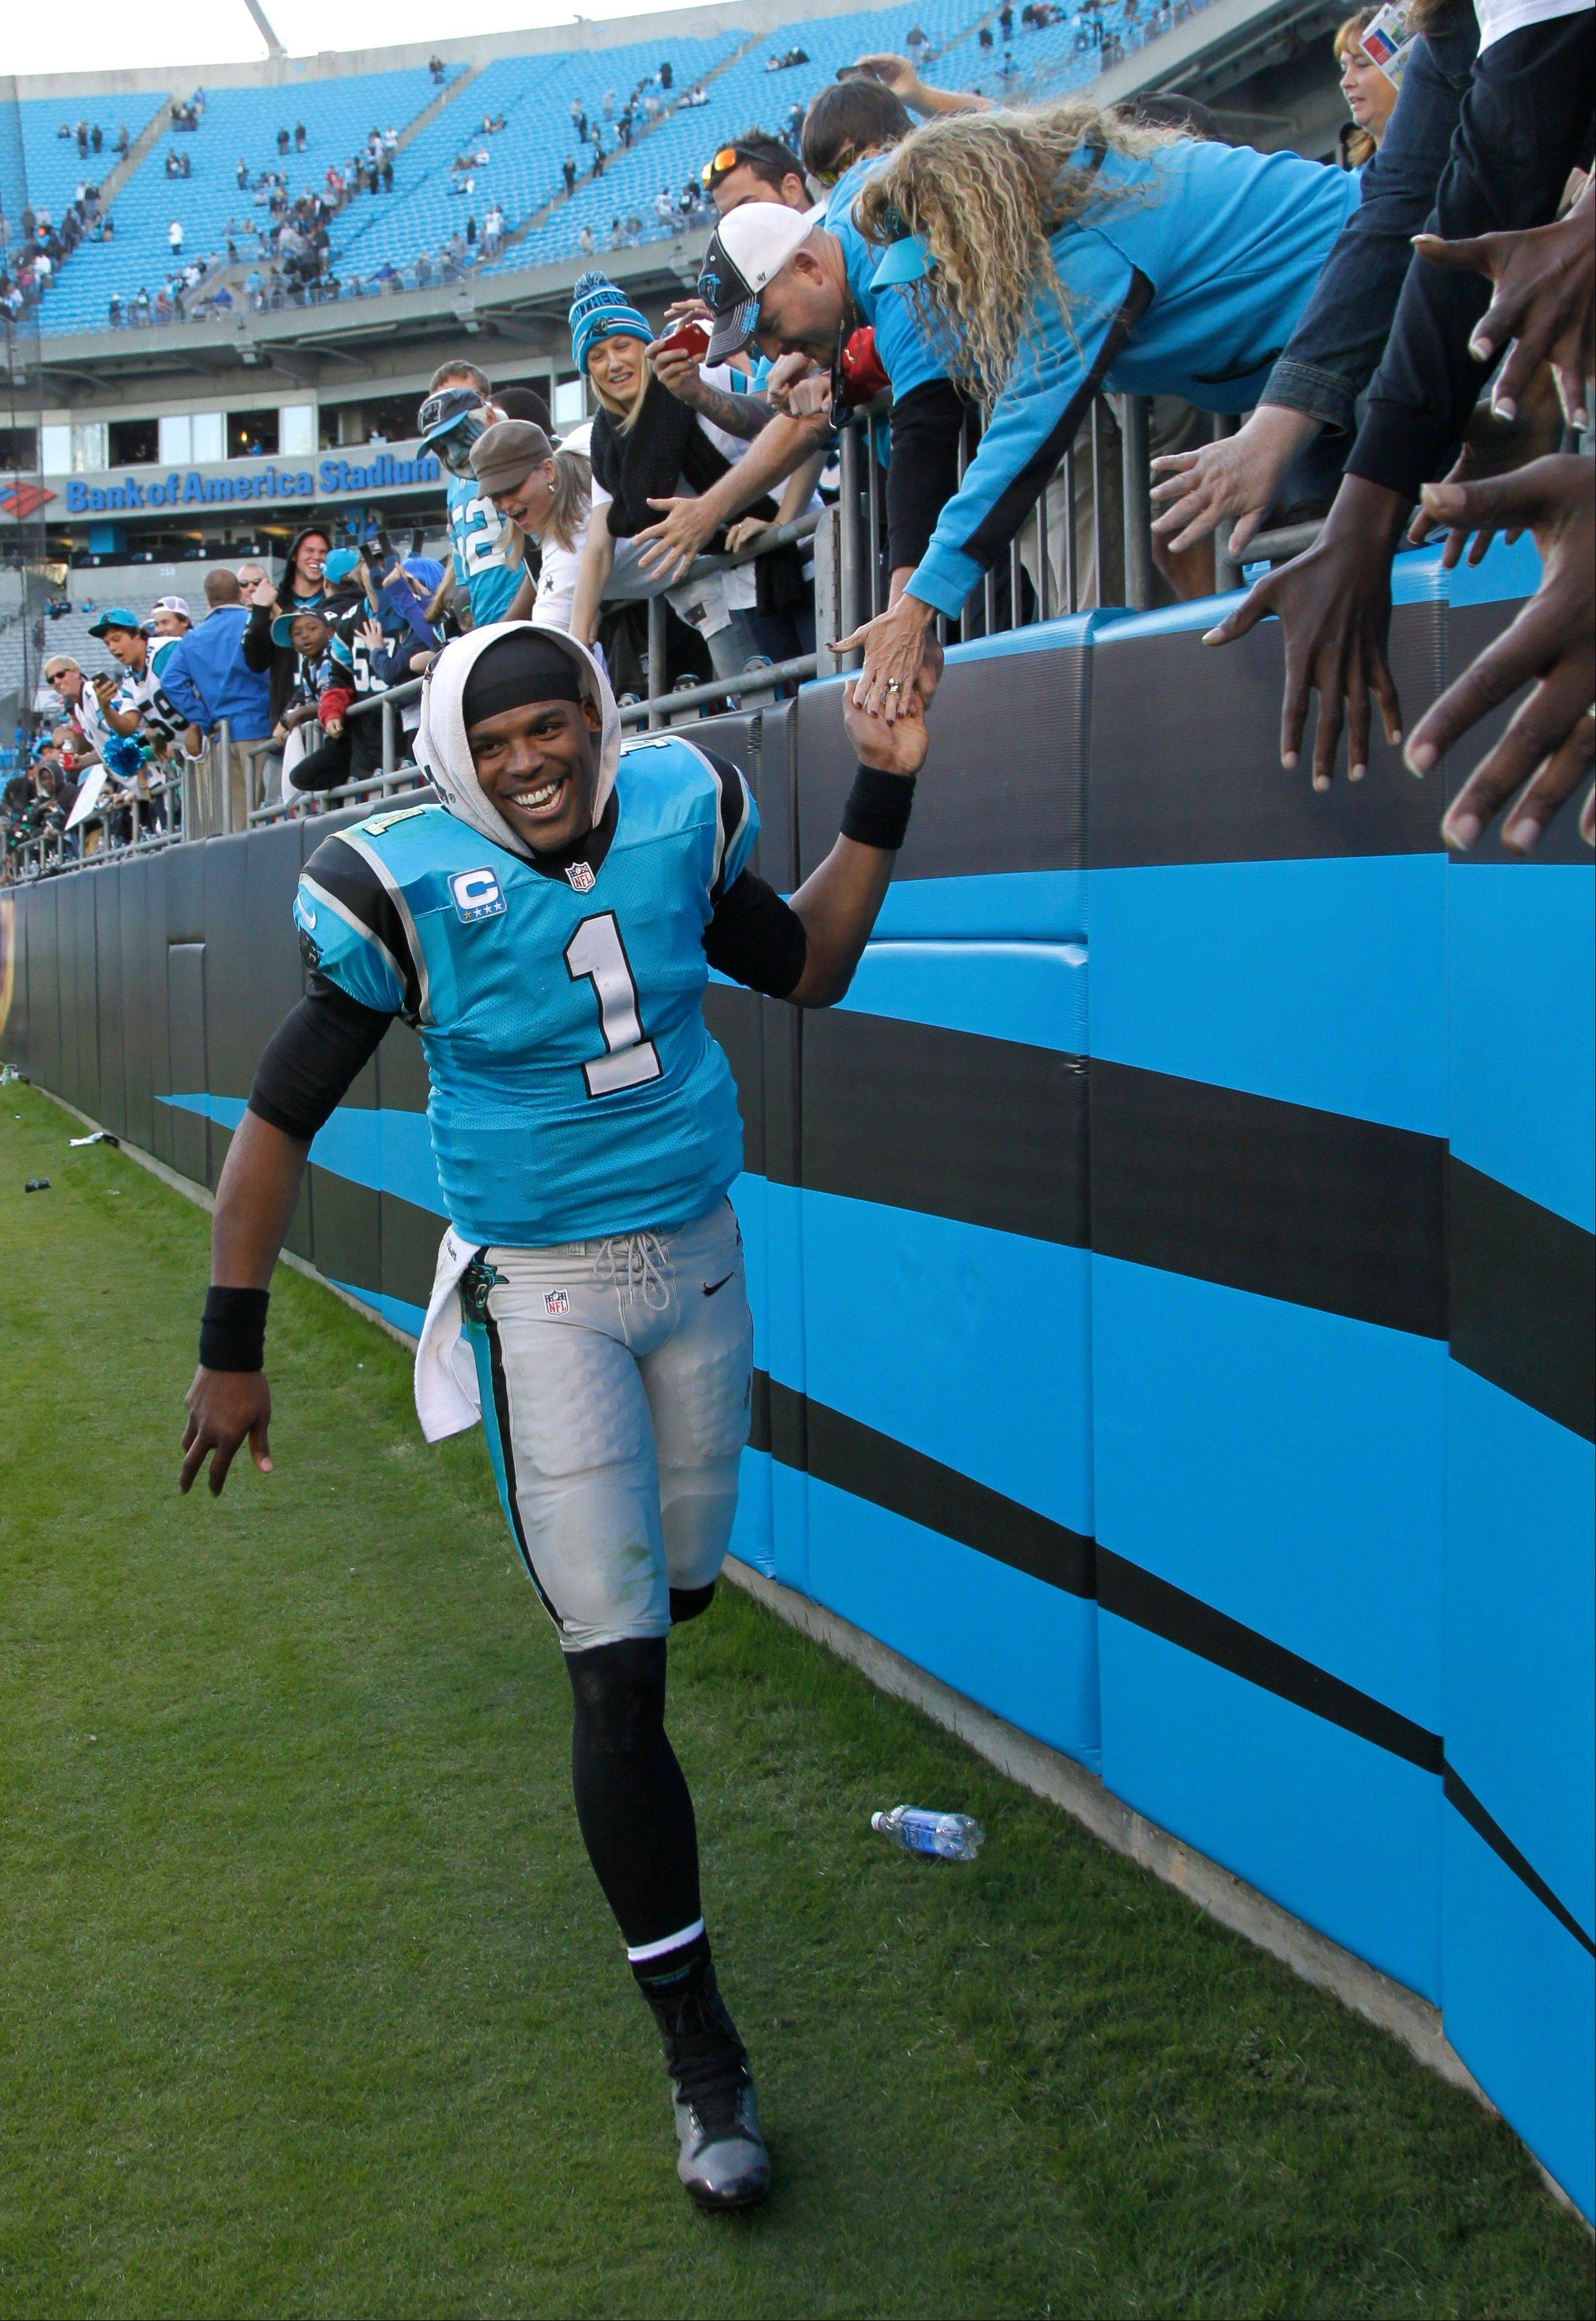 Carolina Panthers� Cam Newton (1) celebrates with fans after an NFL football game against the Atlanta Falcons in Charlotte, N.C., Sunday, Nov. 3, 2013. The Panthers won 34-10.